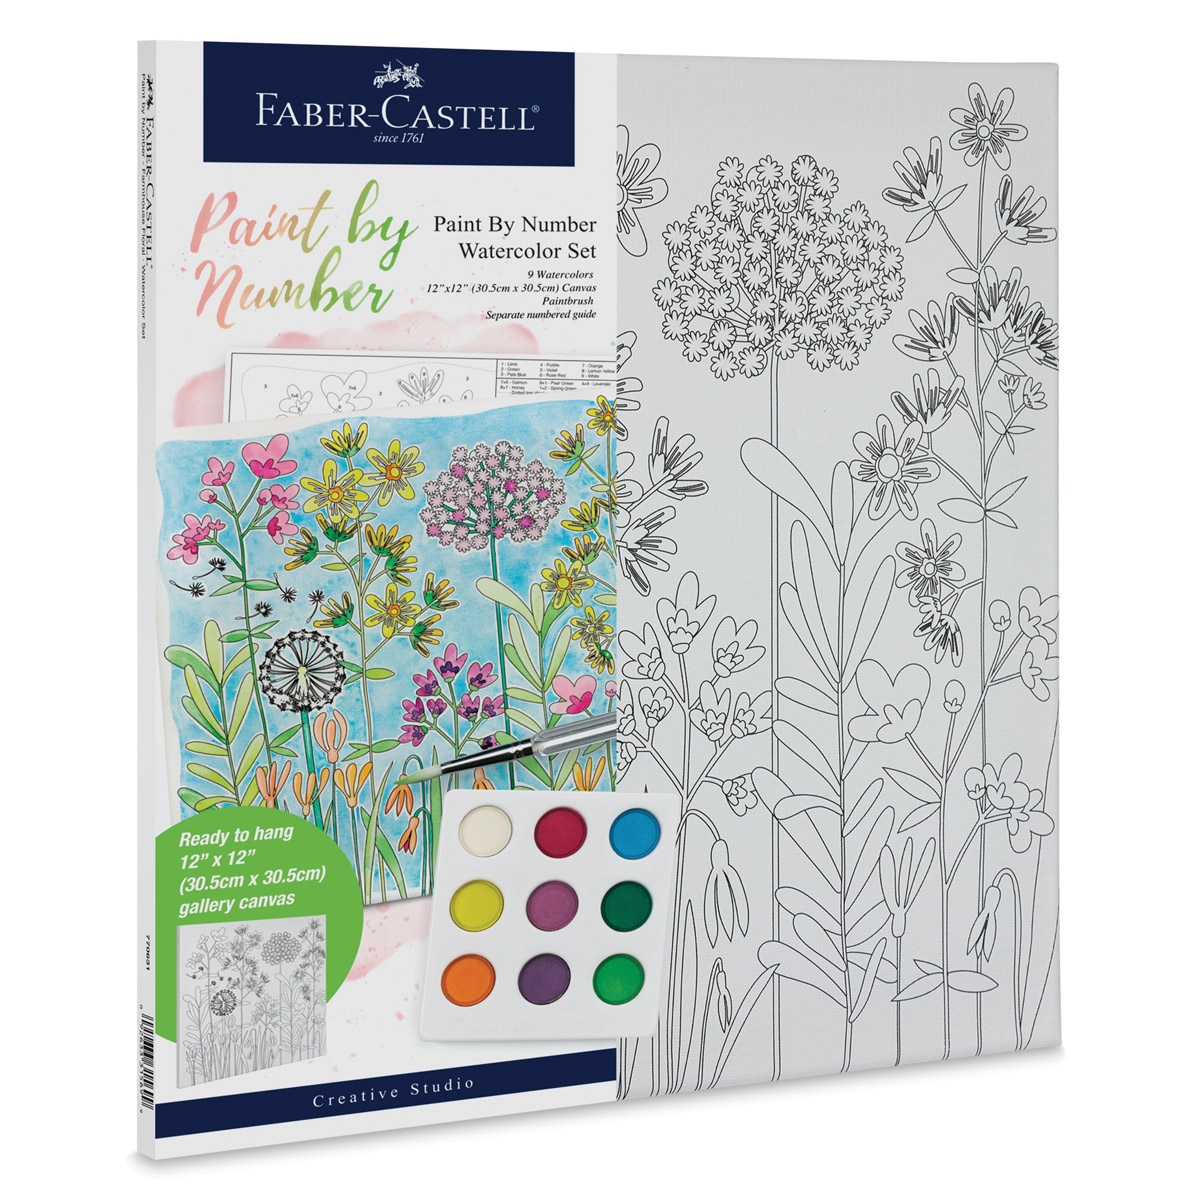 Faber-Castell Creative Studio Watercolor Paint By Numbers Sets